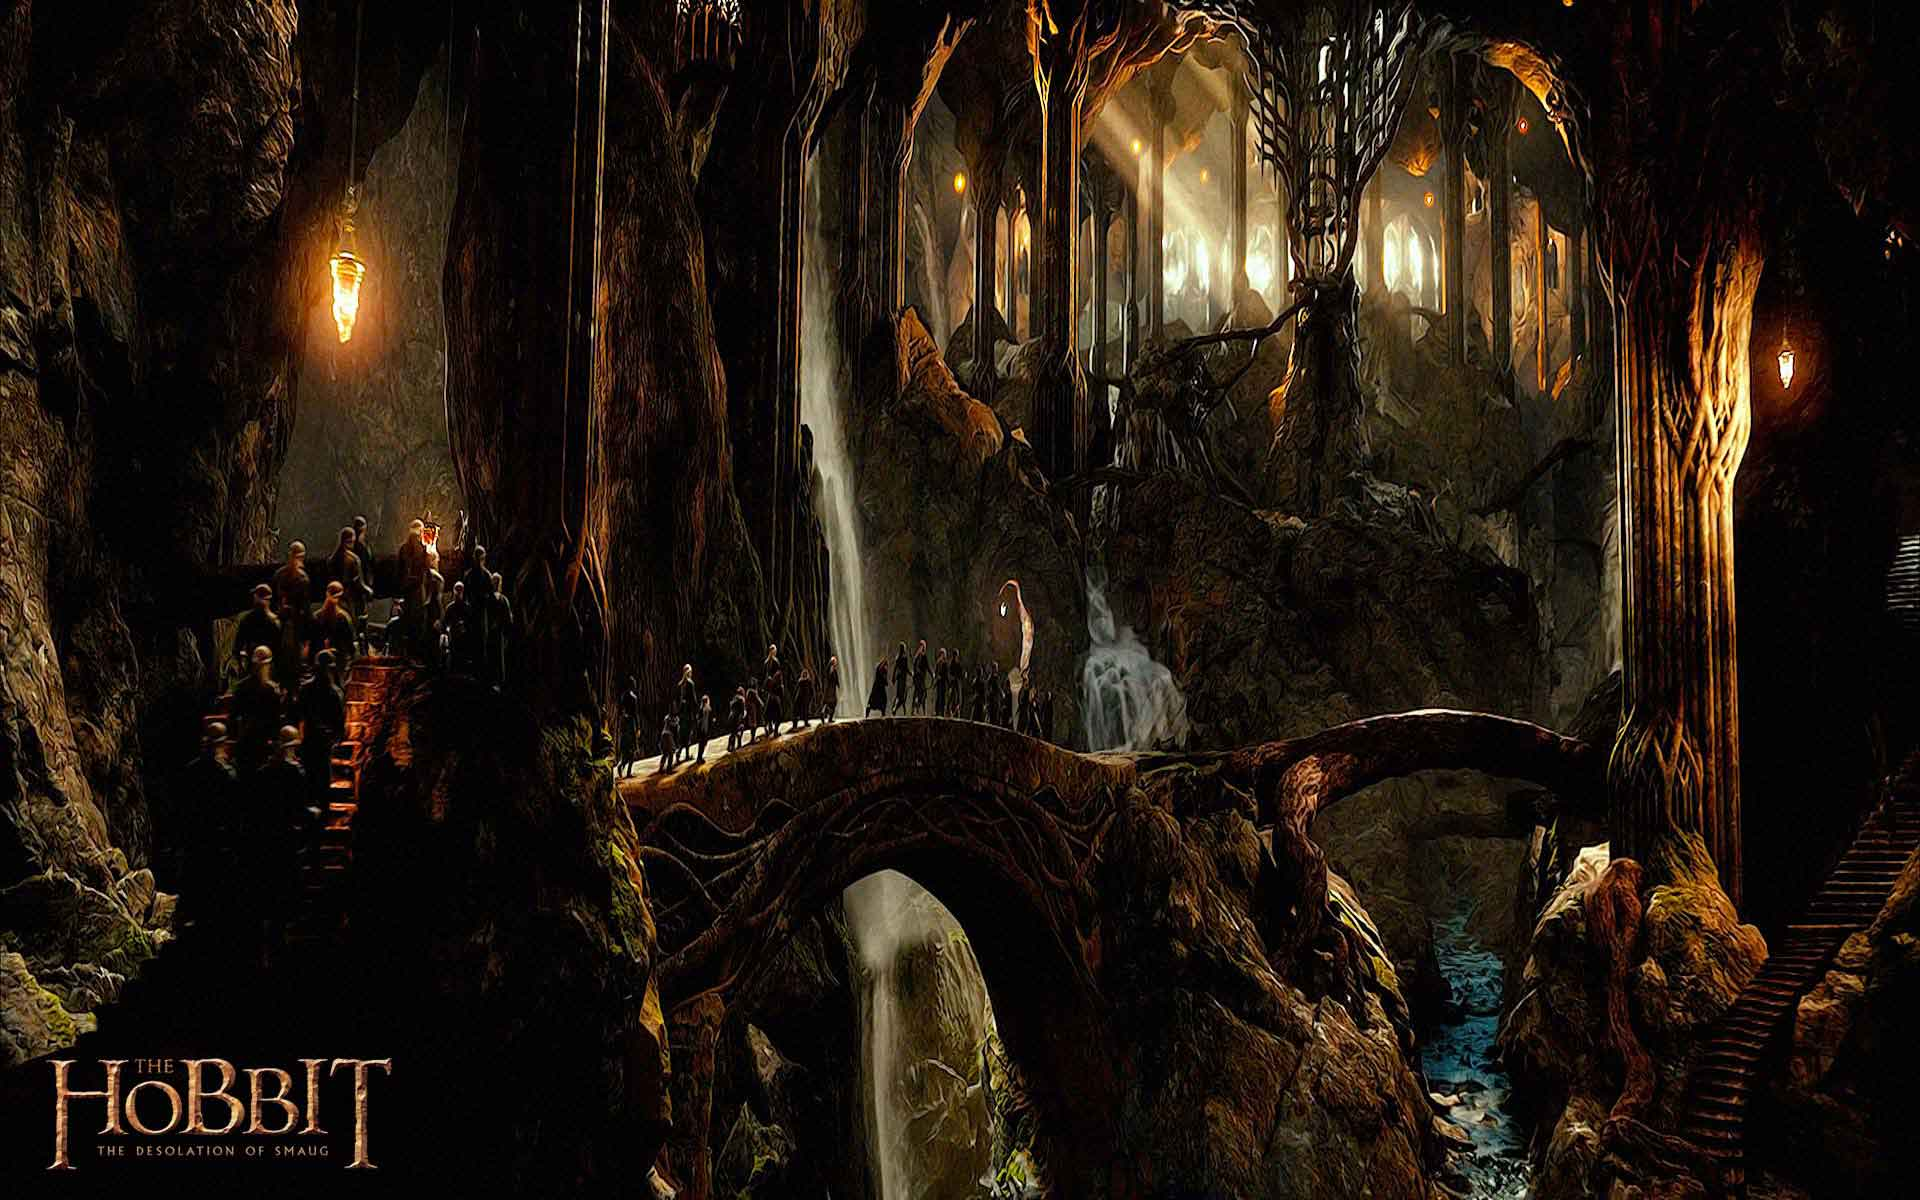 The hobbit wallpapers hd wallpaper cave for Wallpaper hd home movie